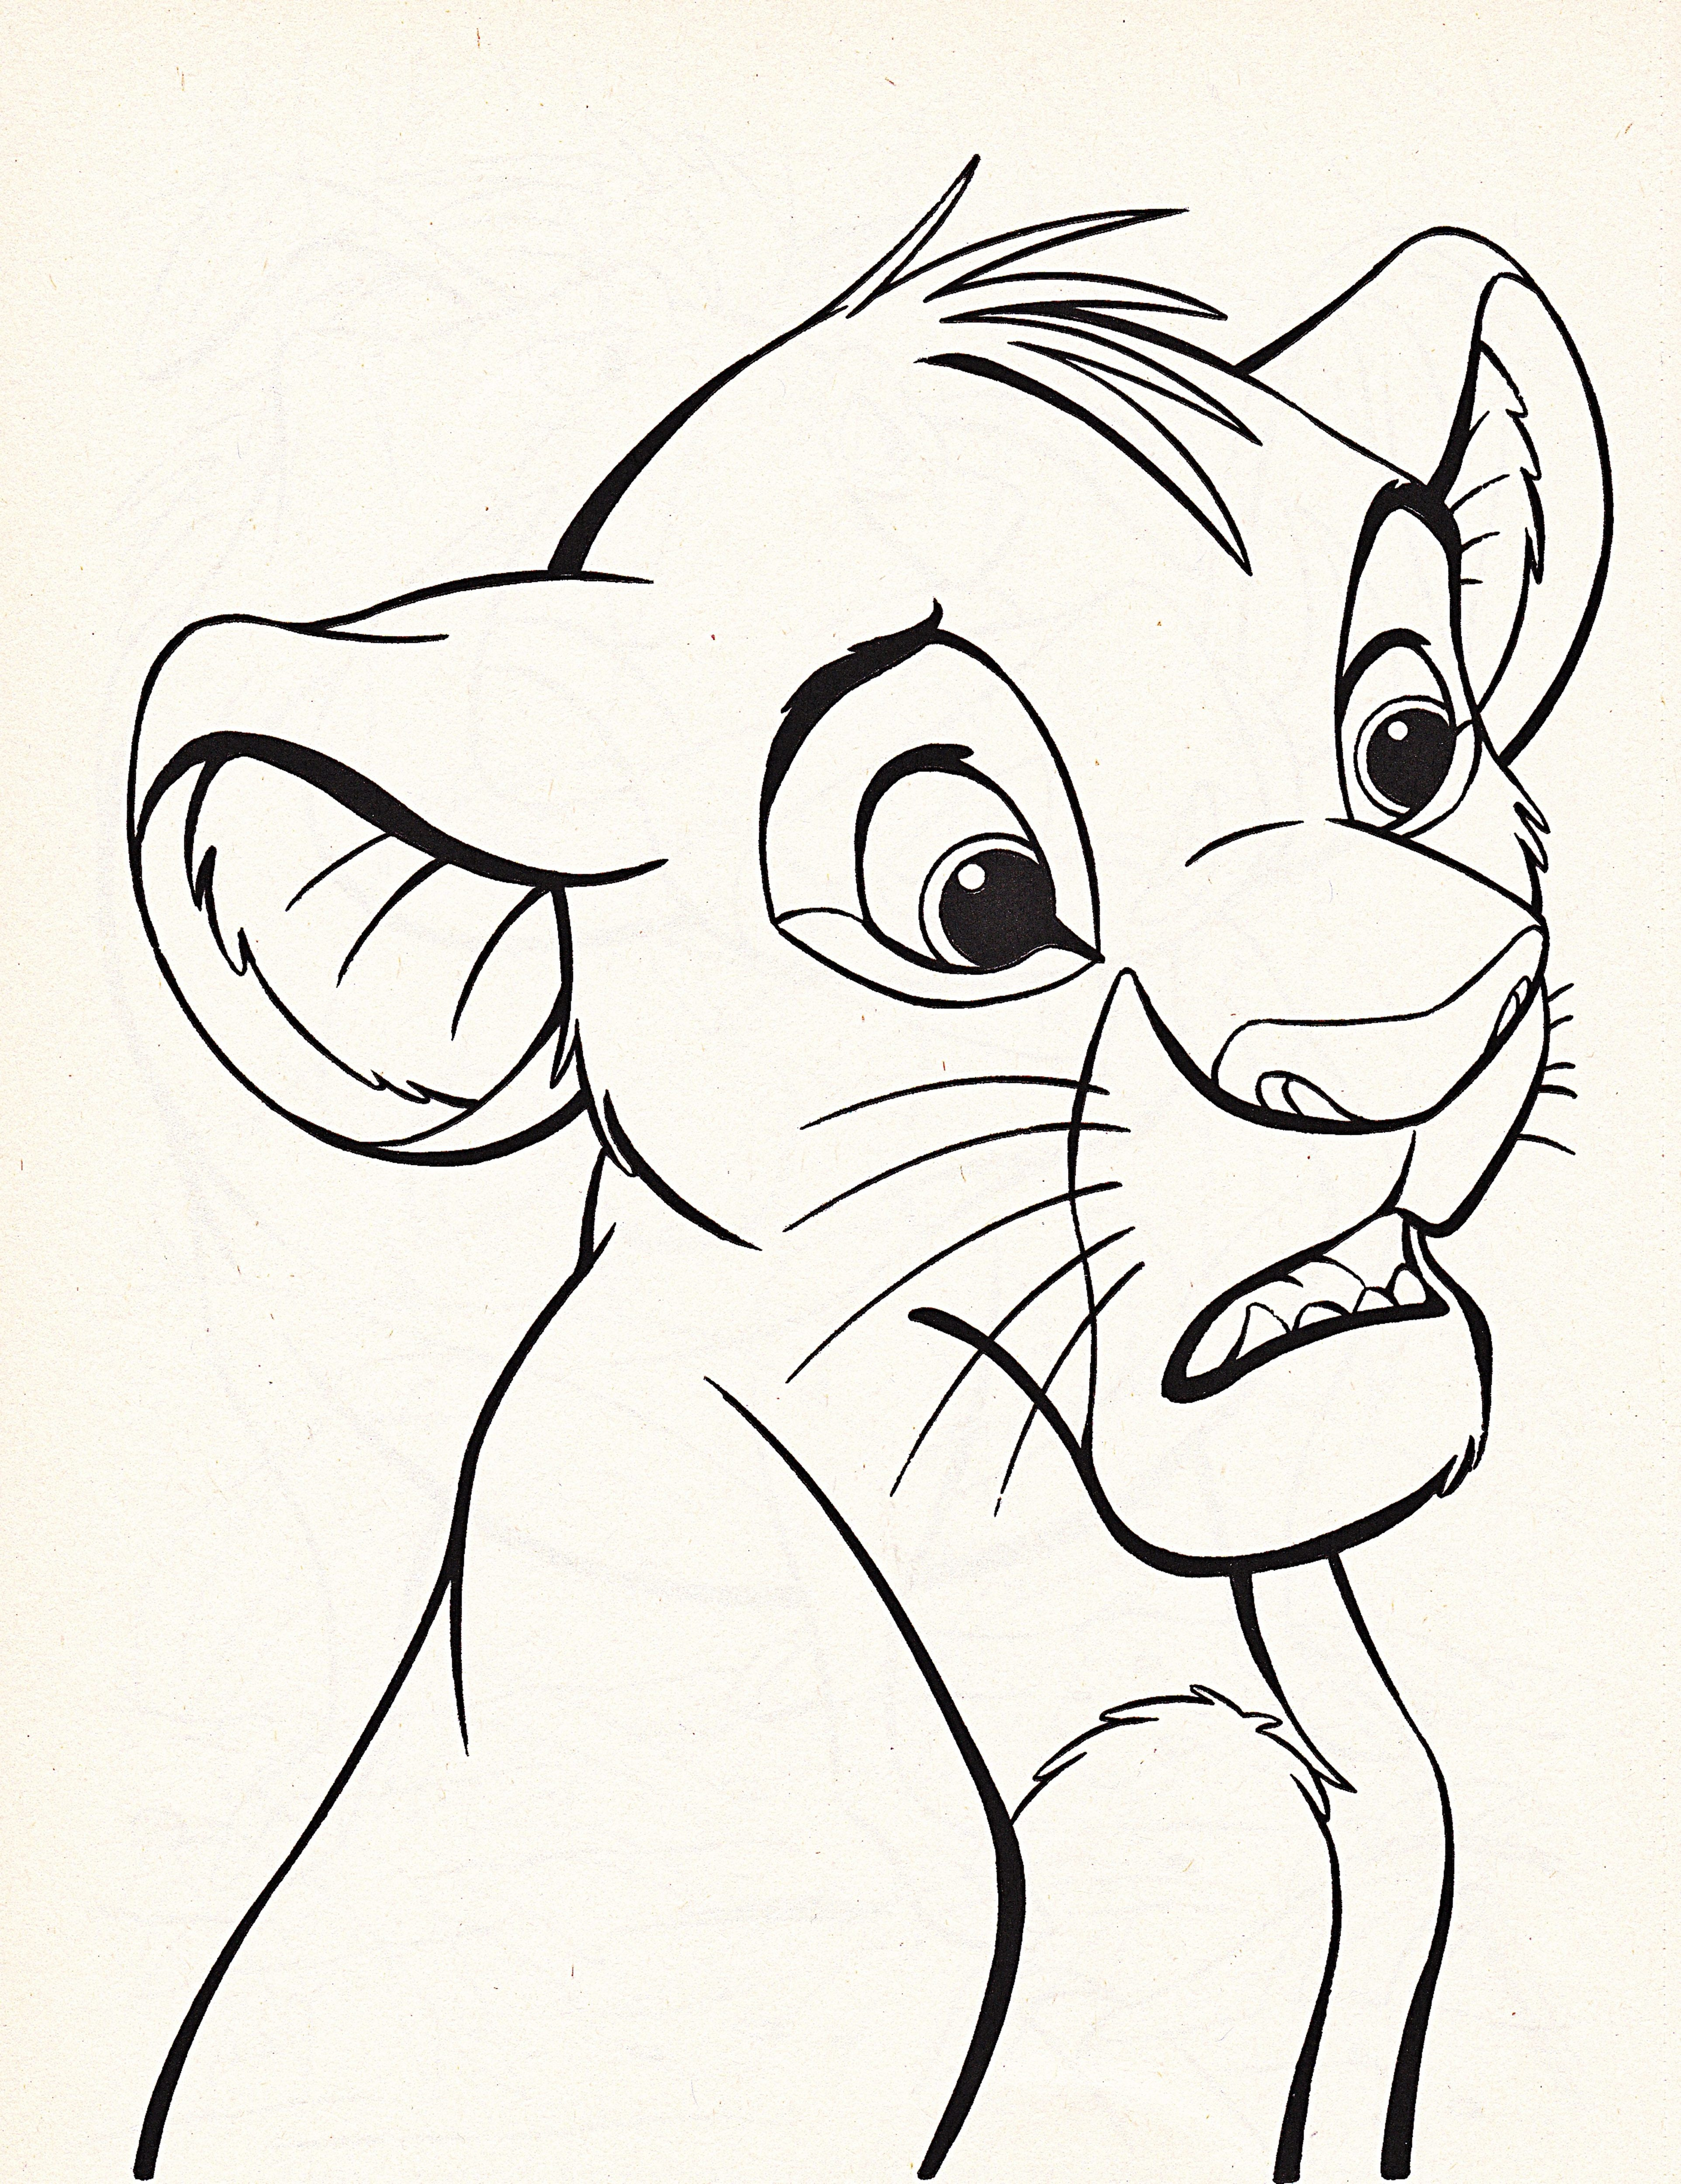 Coloring Pages Walt Disney : Walt disney characters images icons wallpapers and